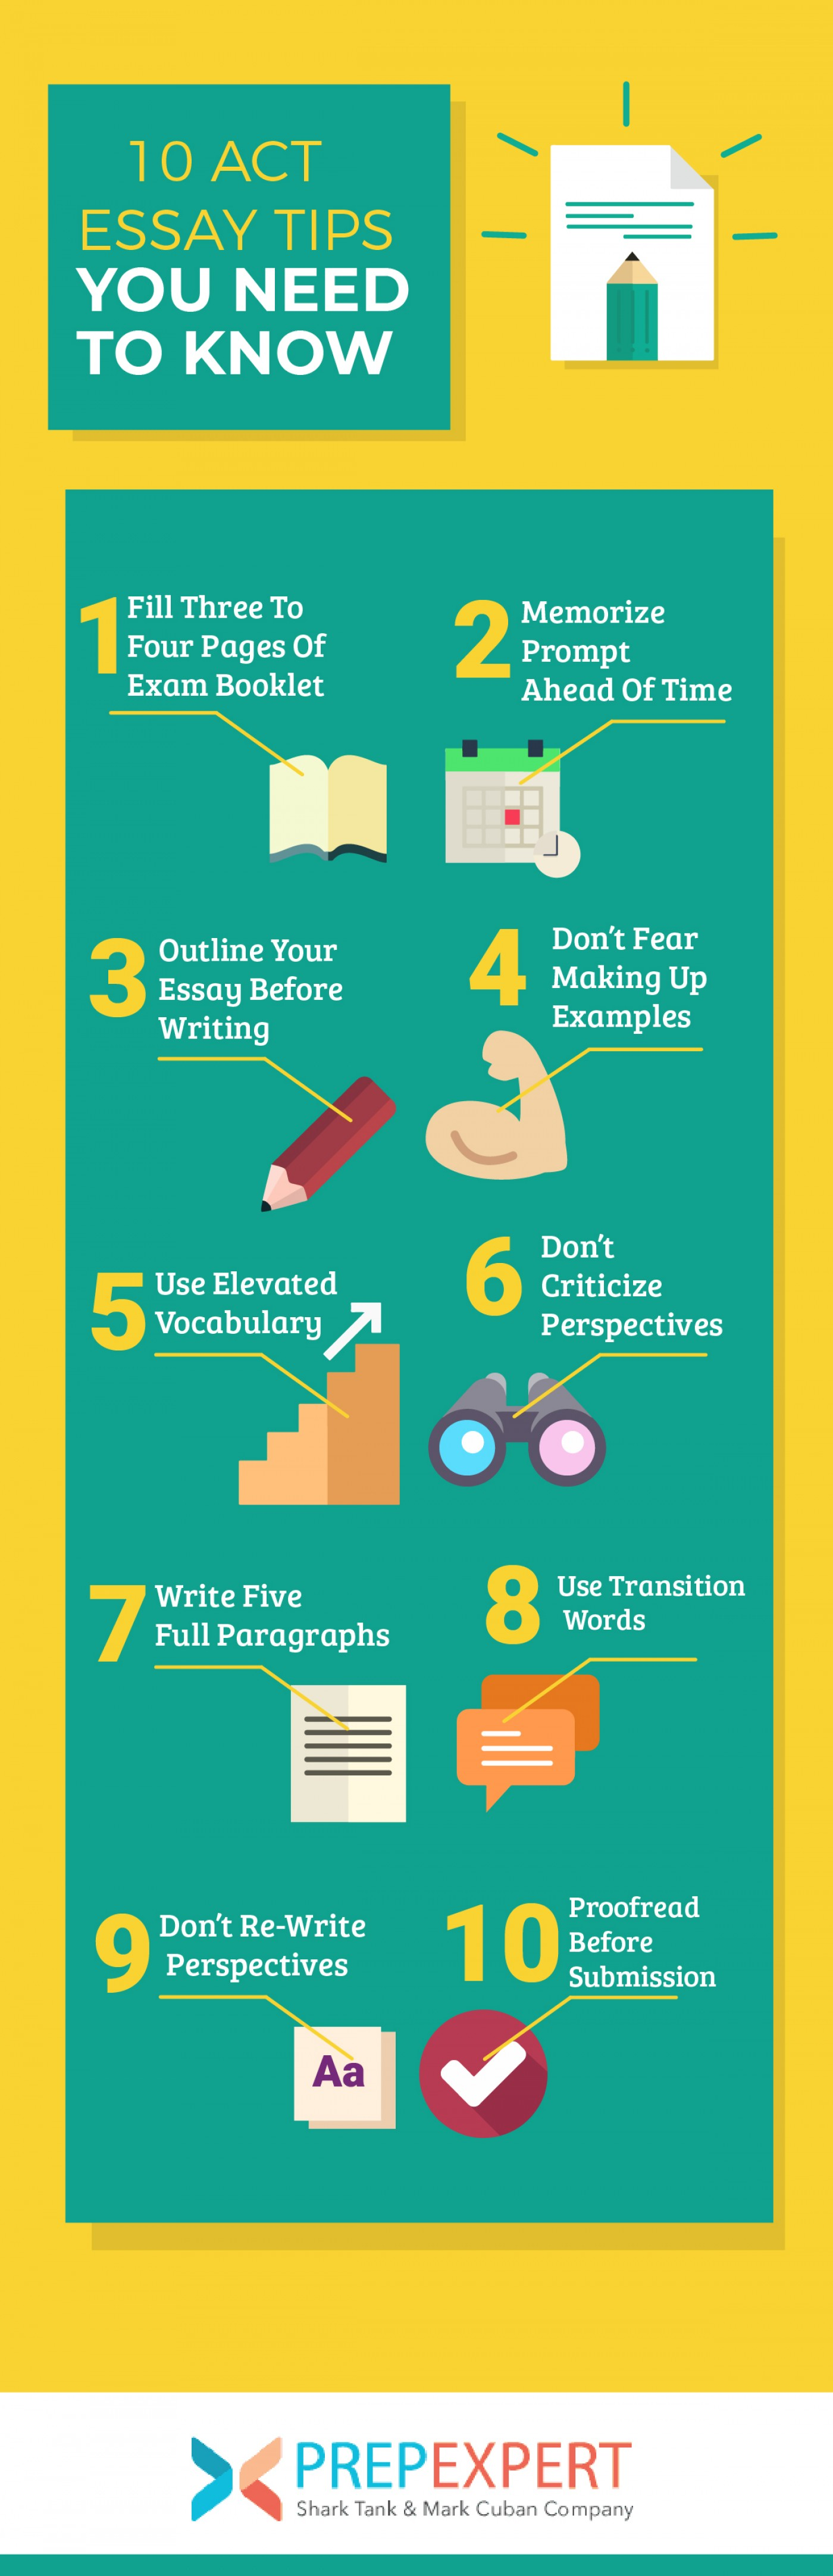 017 Essay Example Act 235585 Essayinfographics 052918 Fearsome Test Time Prompt 2016 1400